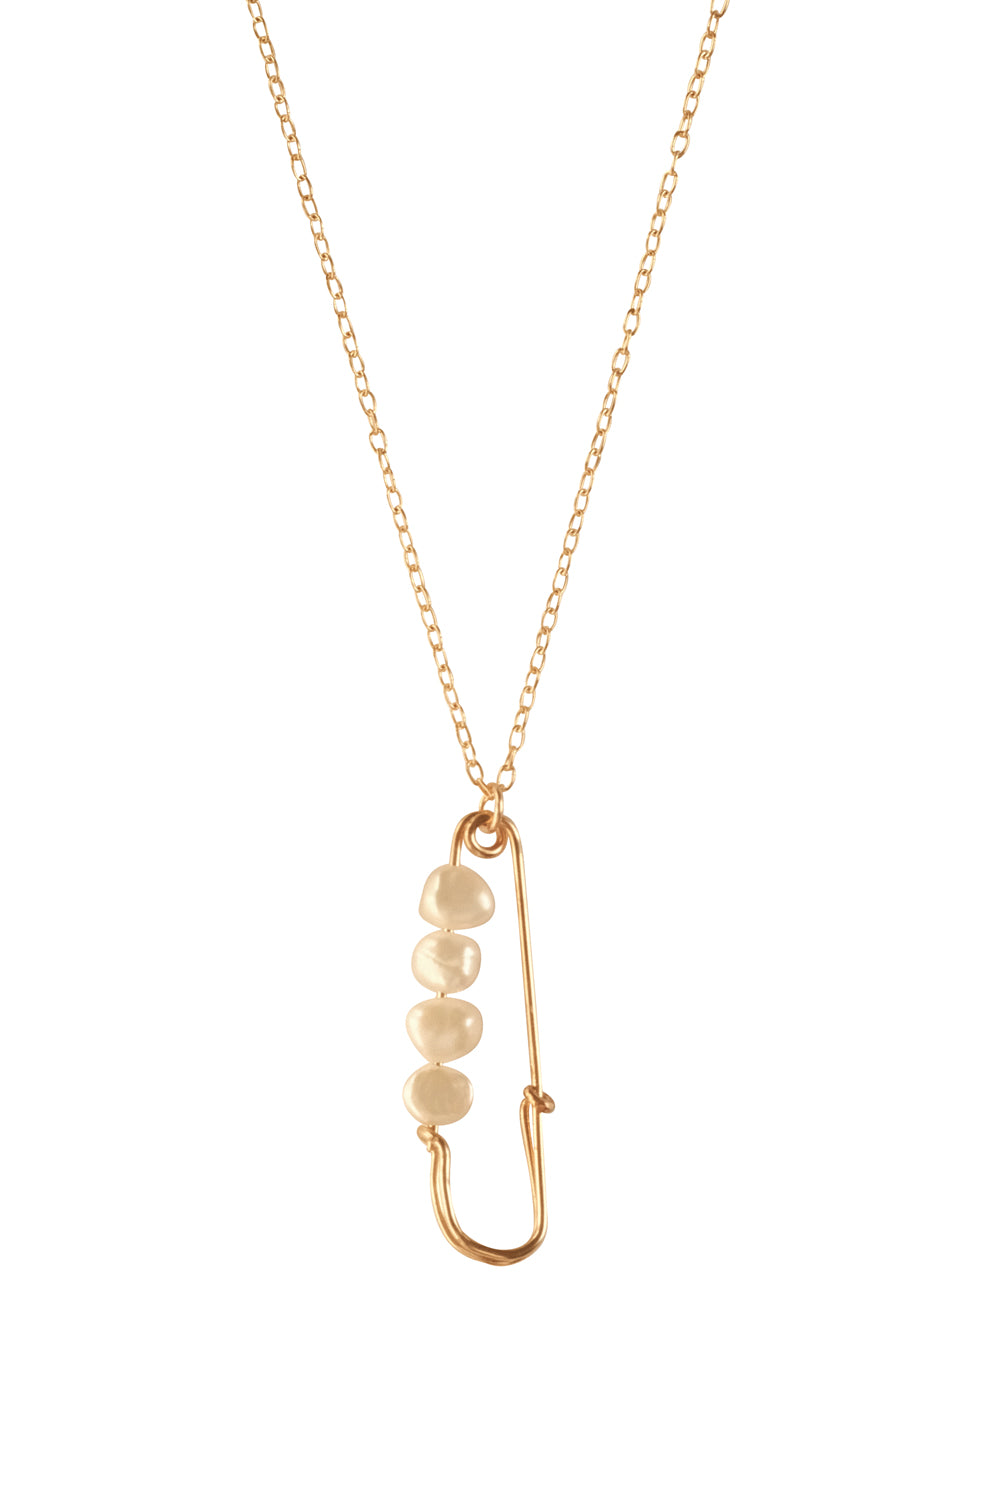 Safety Pin Pearl Necklace - S-kin Studio Jewelry | Minimal Jewellery That Lasts.